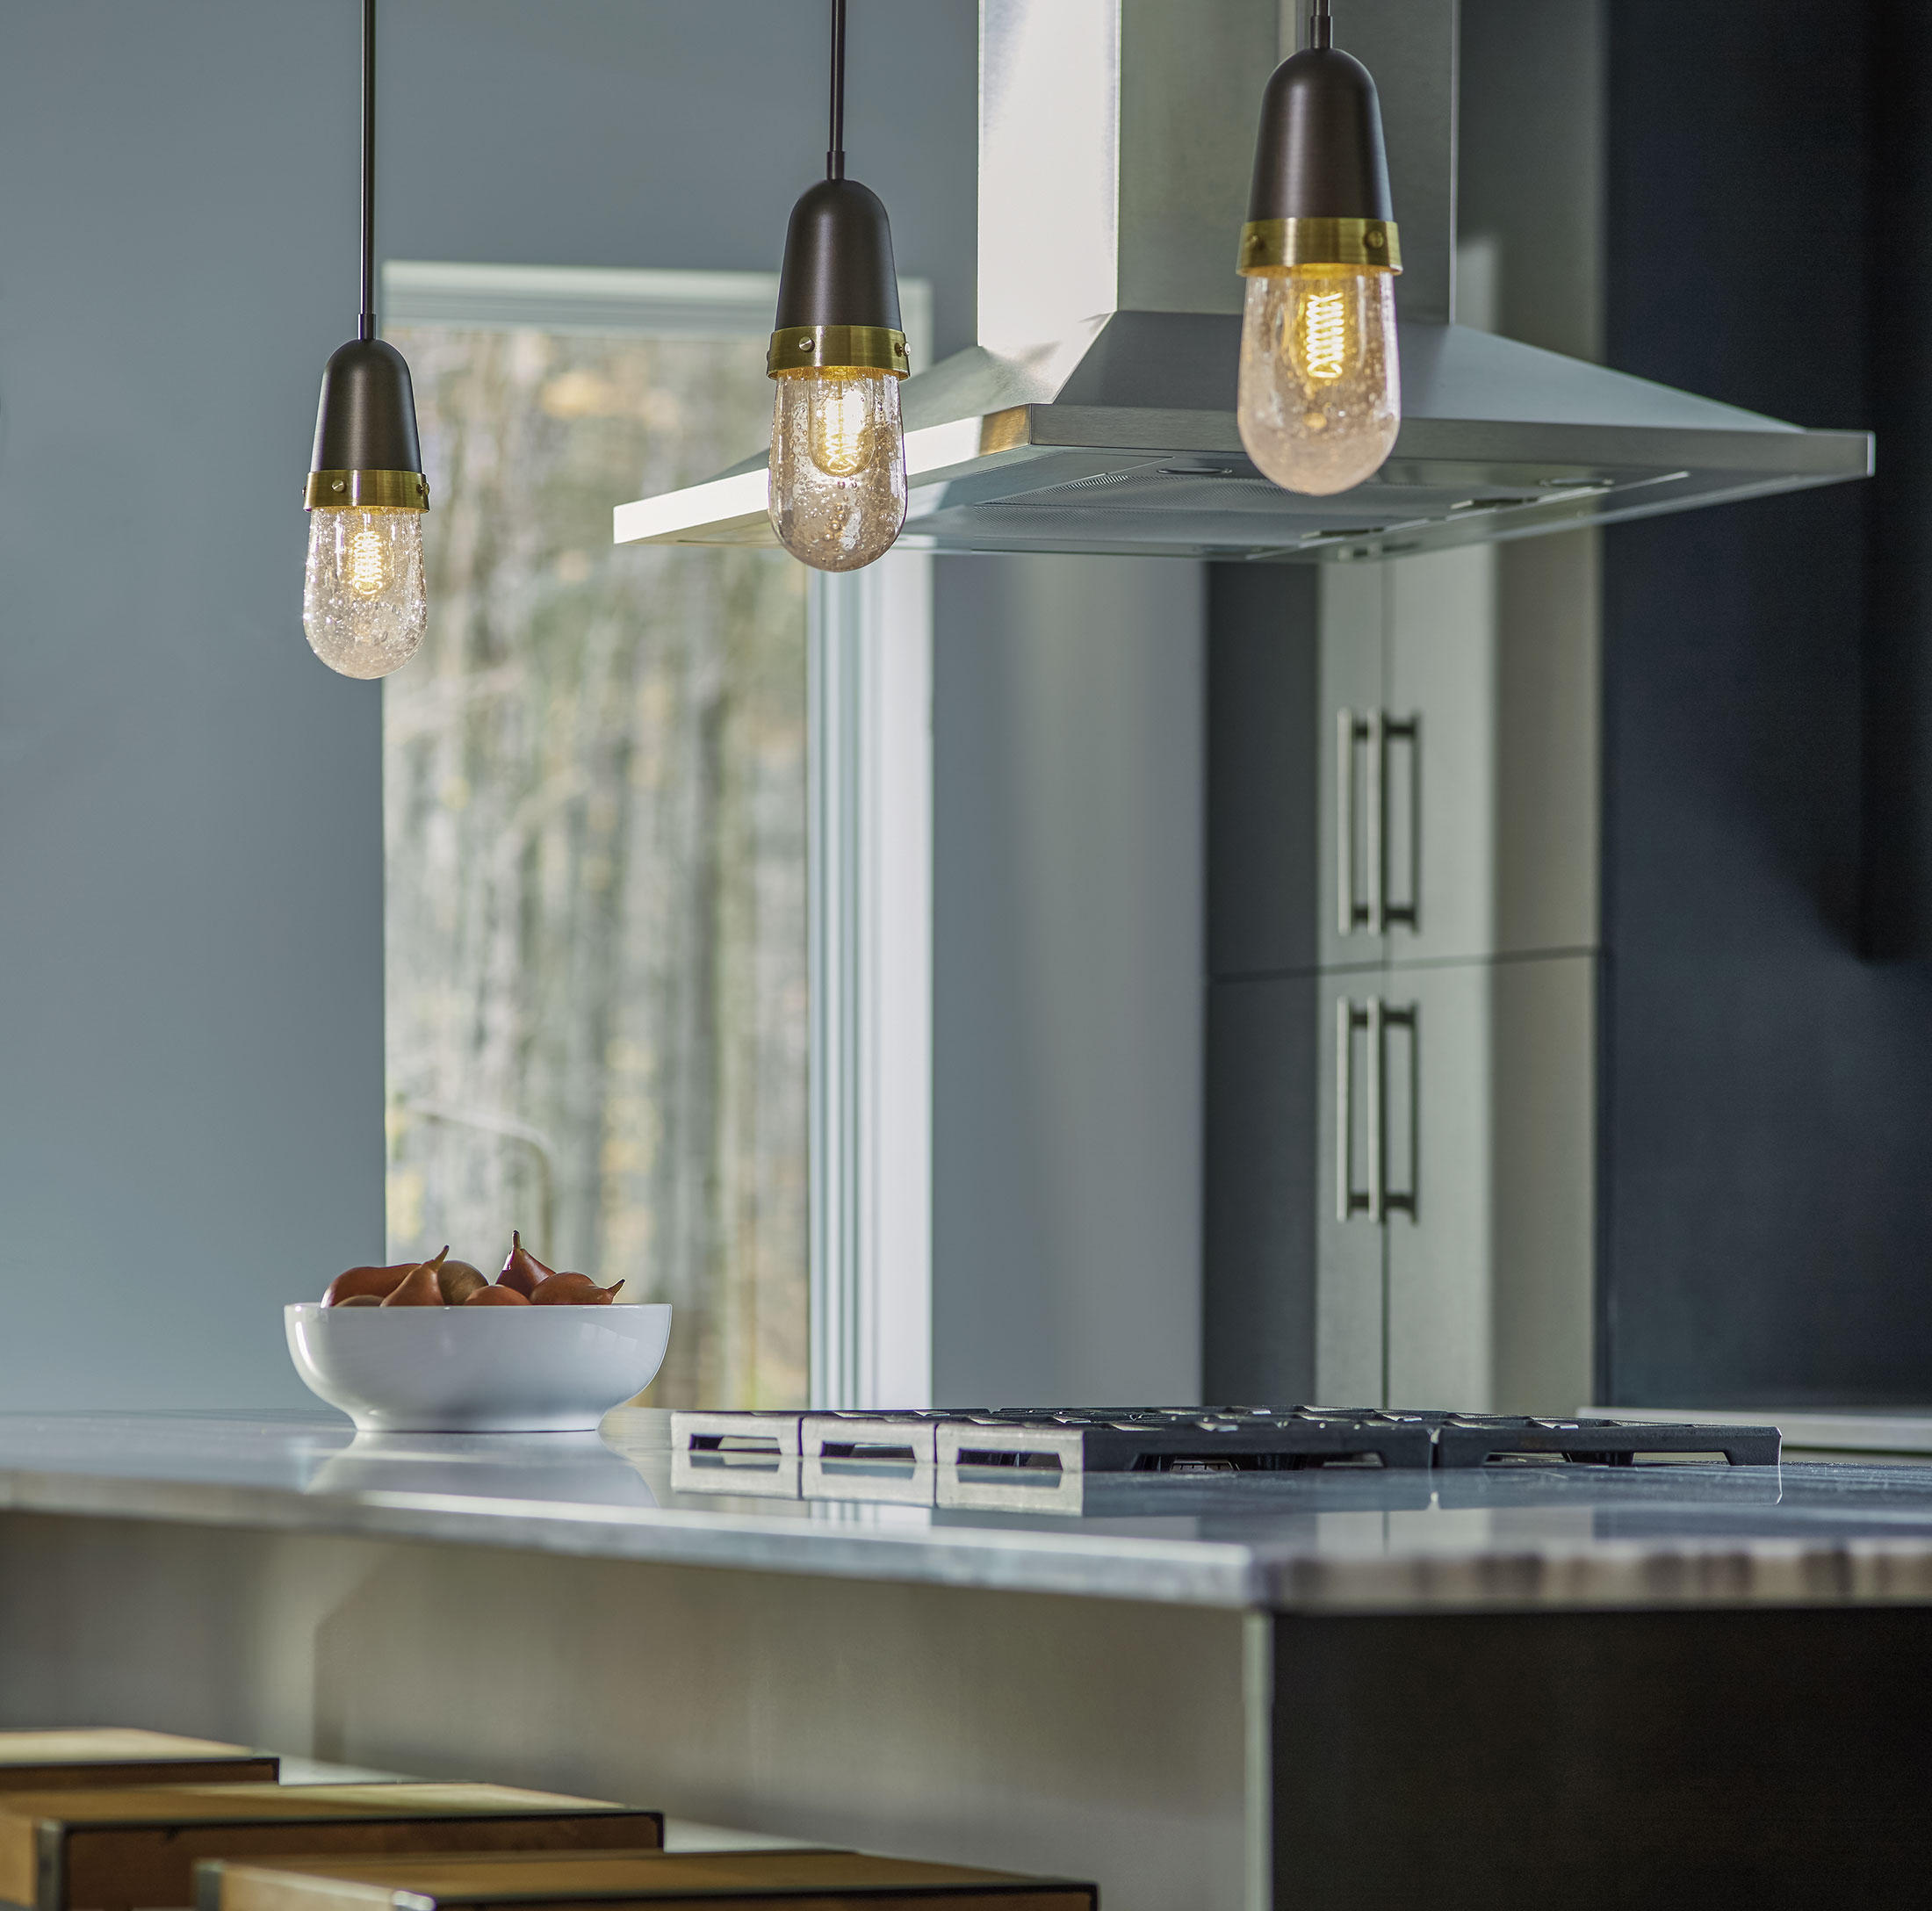 Hubbardton Forge New Town Sconce: General Lighting From Hubbardton